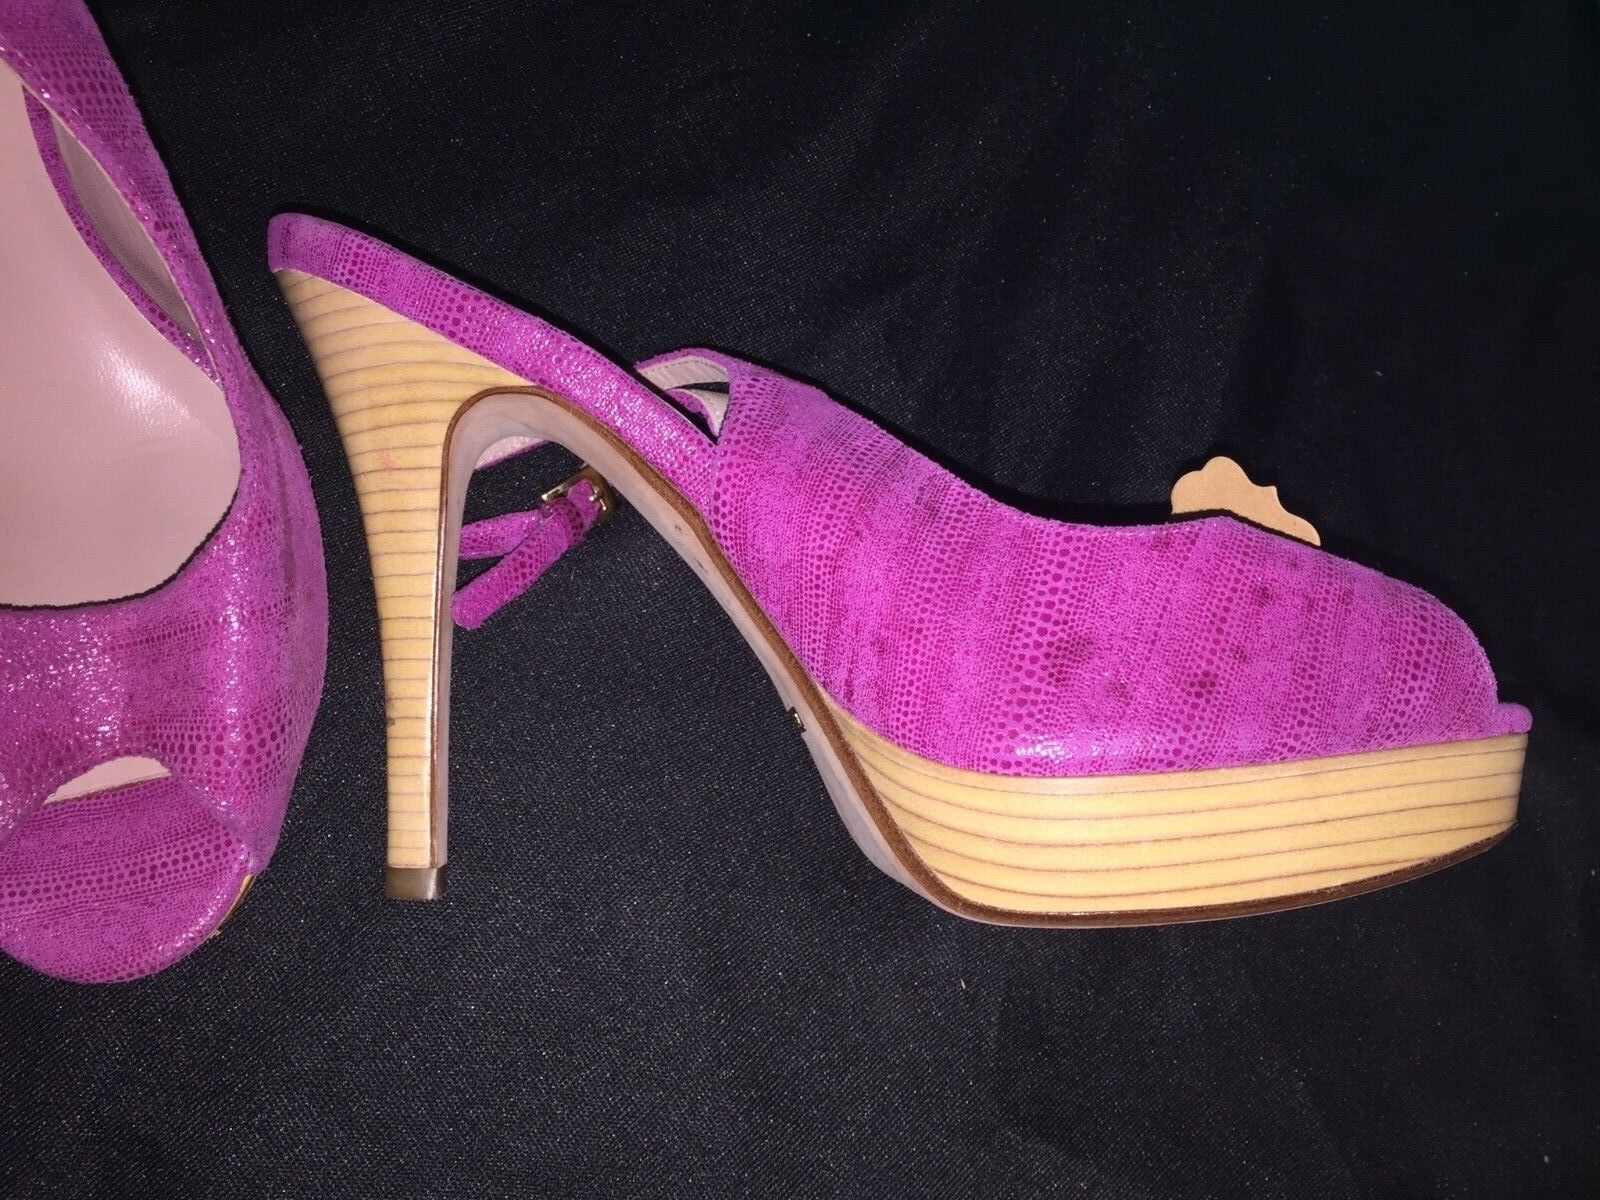 New New New Cole Haan Leather Pumps Sz. 10 Sale 293499